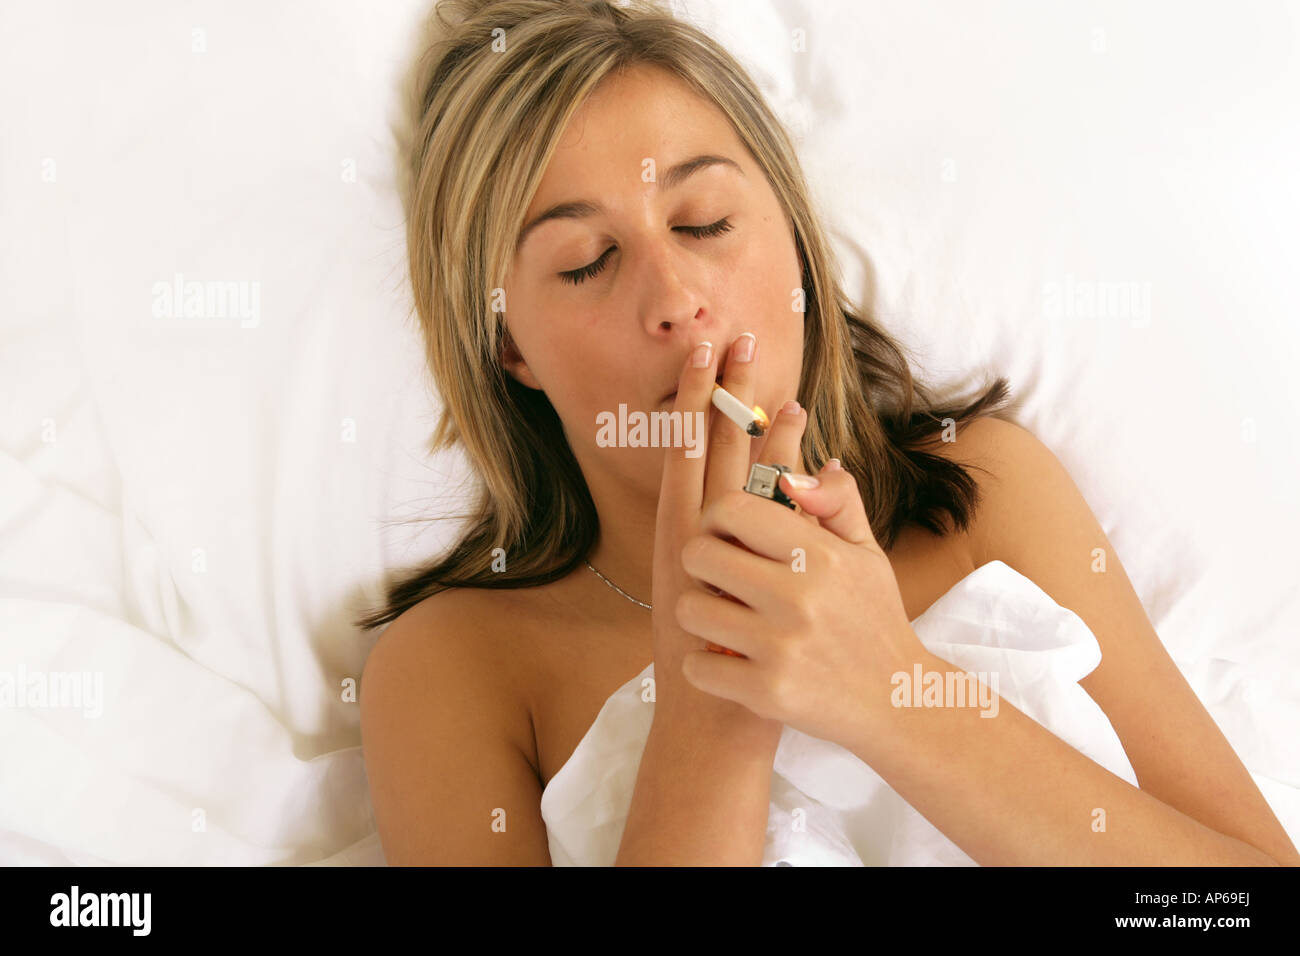 https://c8.alamy.com/comp/AP69EJ/young-woman-smoking-in-bed-lighting-a-cigarette-AP69EJ.jpg